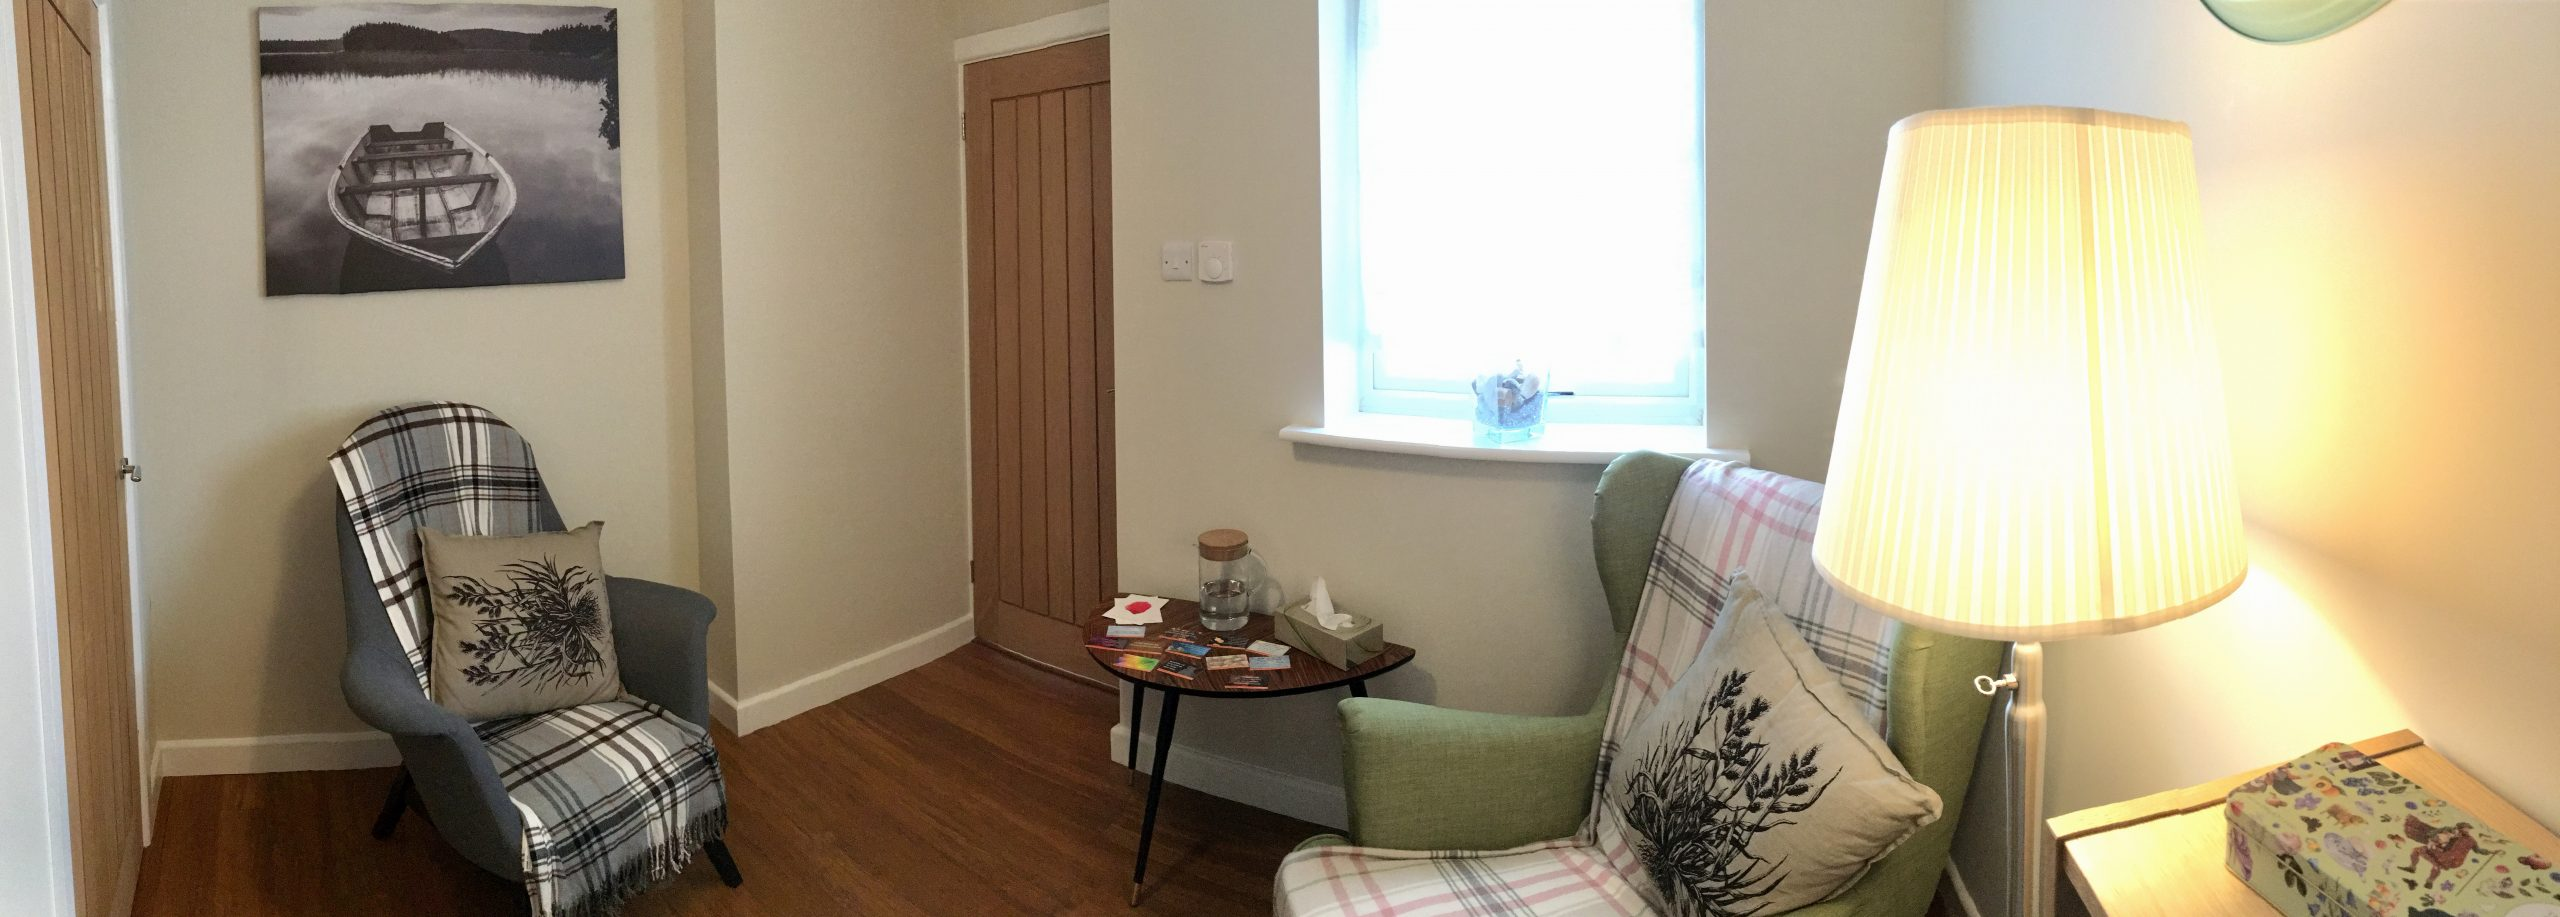 confidentiality and privacy in dedicated therapy room